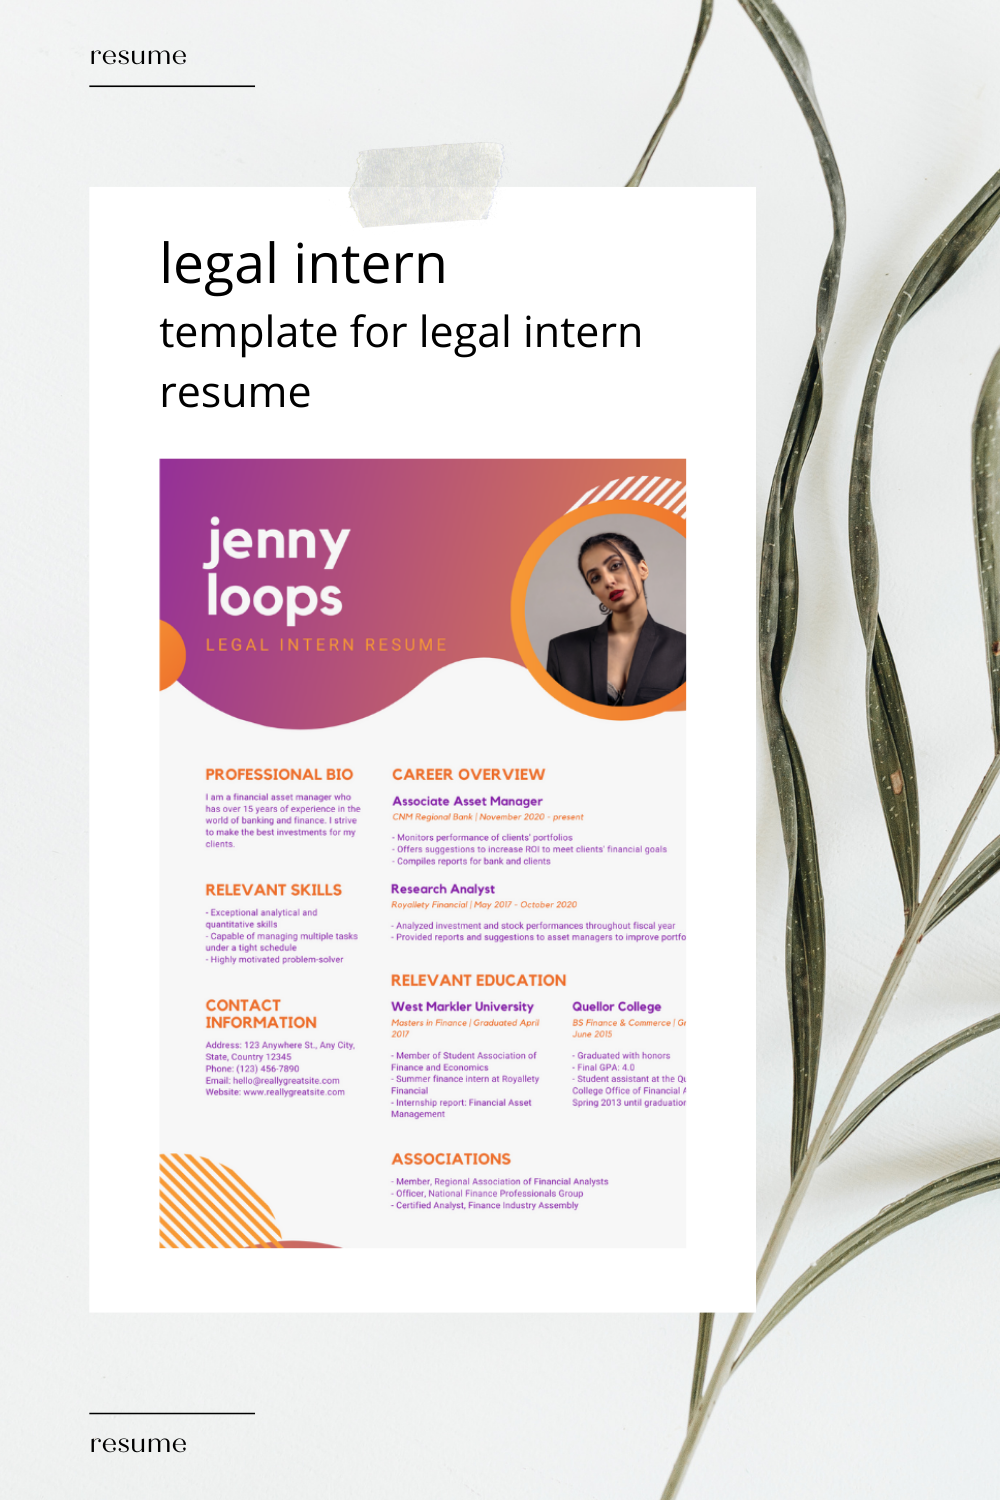 Legal Intern Resume Resume 2021 Template For Legal Intern Resume In 2021 Resume College Information Resume Templates